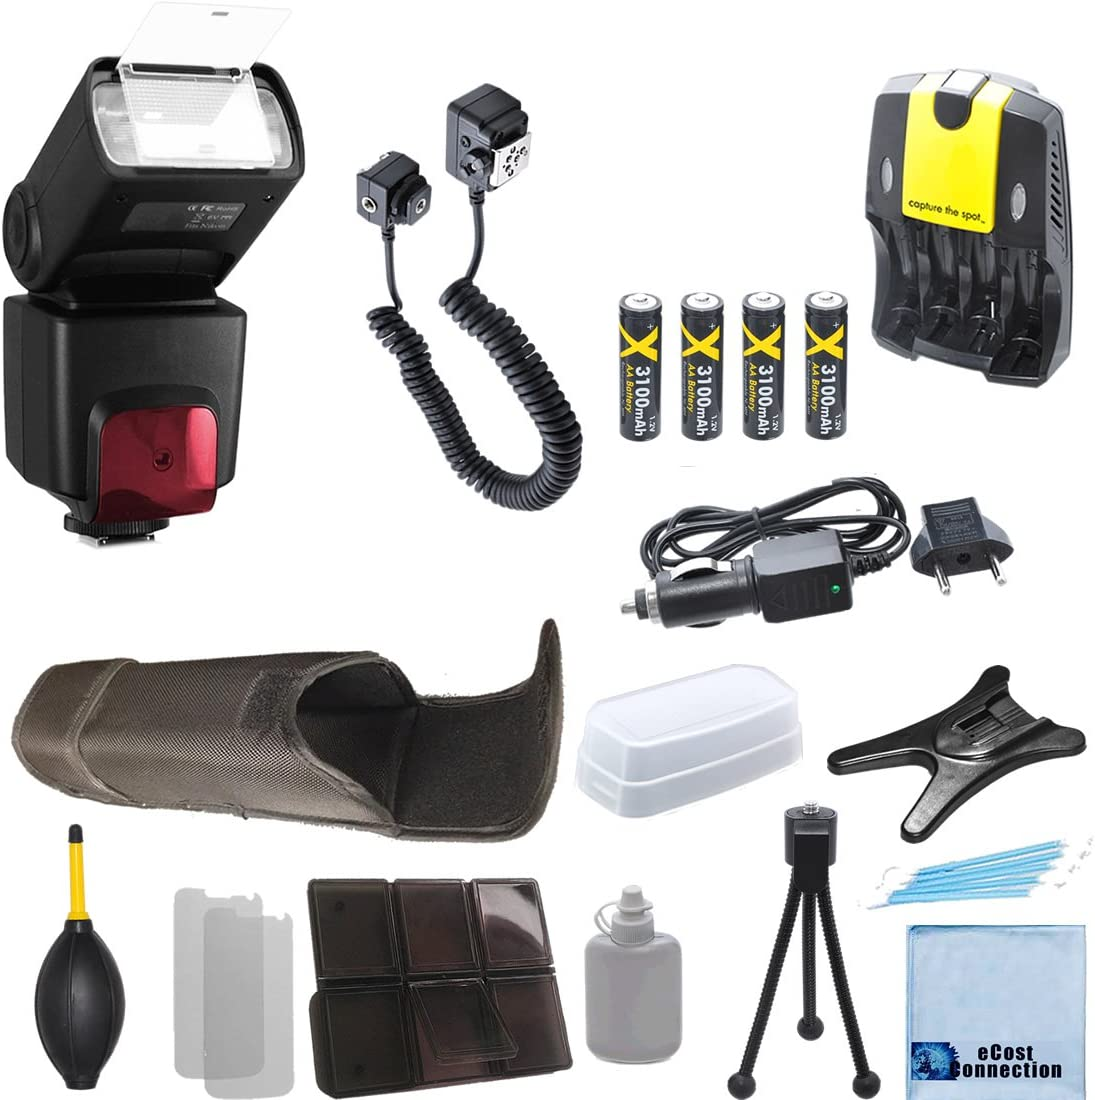 4 AA Battery Charger Deluxe Accessories Kit for Nikon D7000 D7100 D7200 D600 D610 D700 D800 D90 D5300 DSLR Pro Series Digital SLR Auto-Focus//Auto Power Zoom TTL Flash w//LCD Display Off Camera Shoe Cord